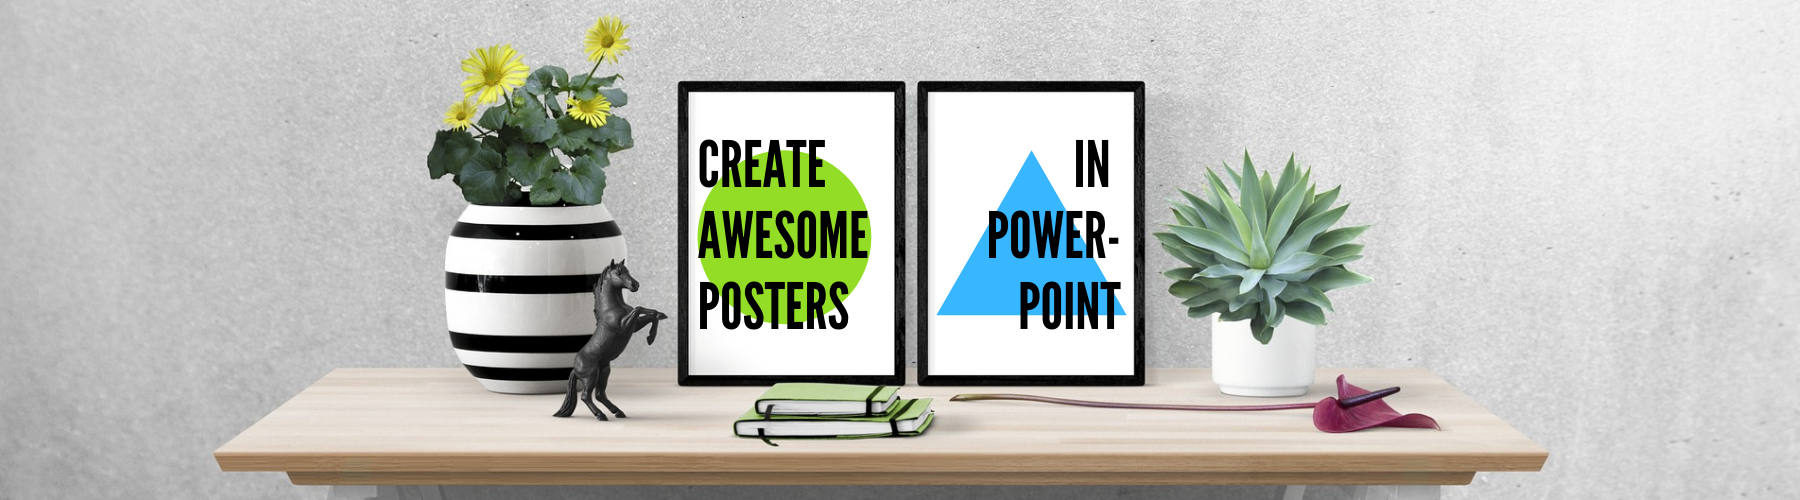 Create Awesome Posters In PowerPoint